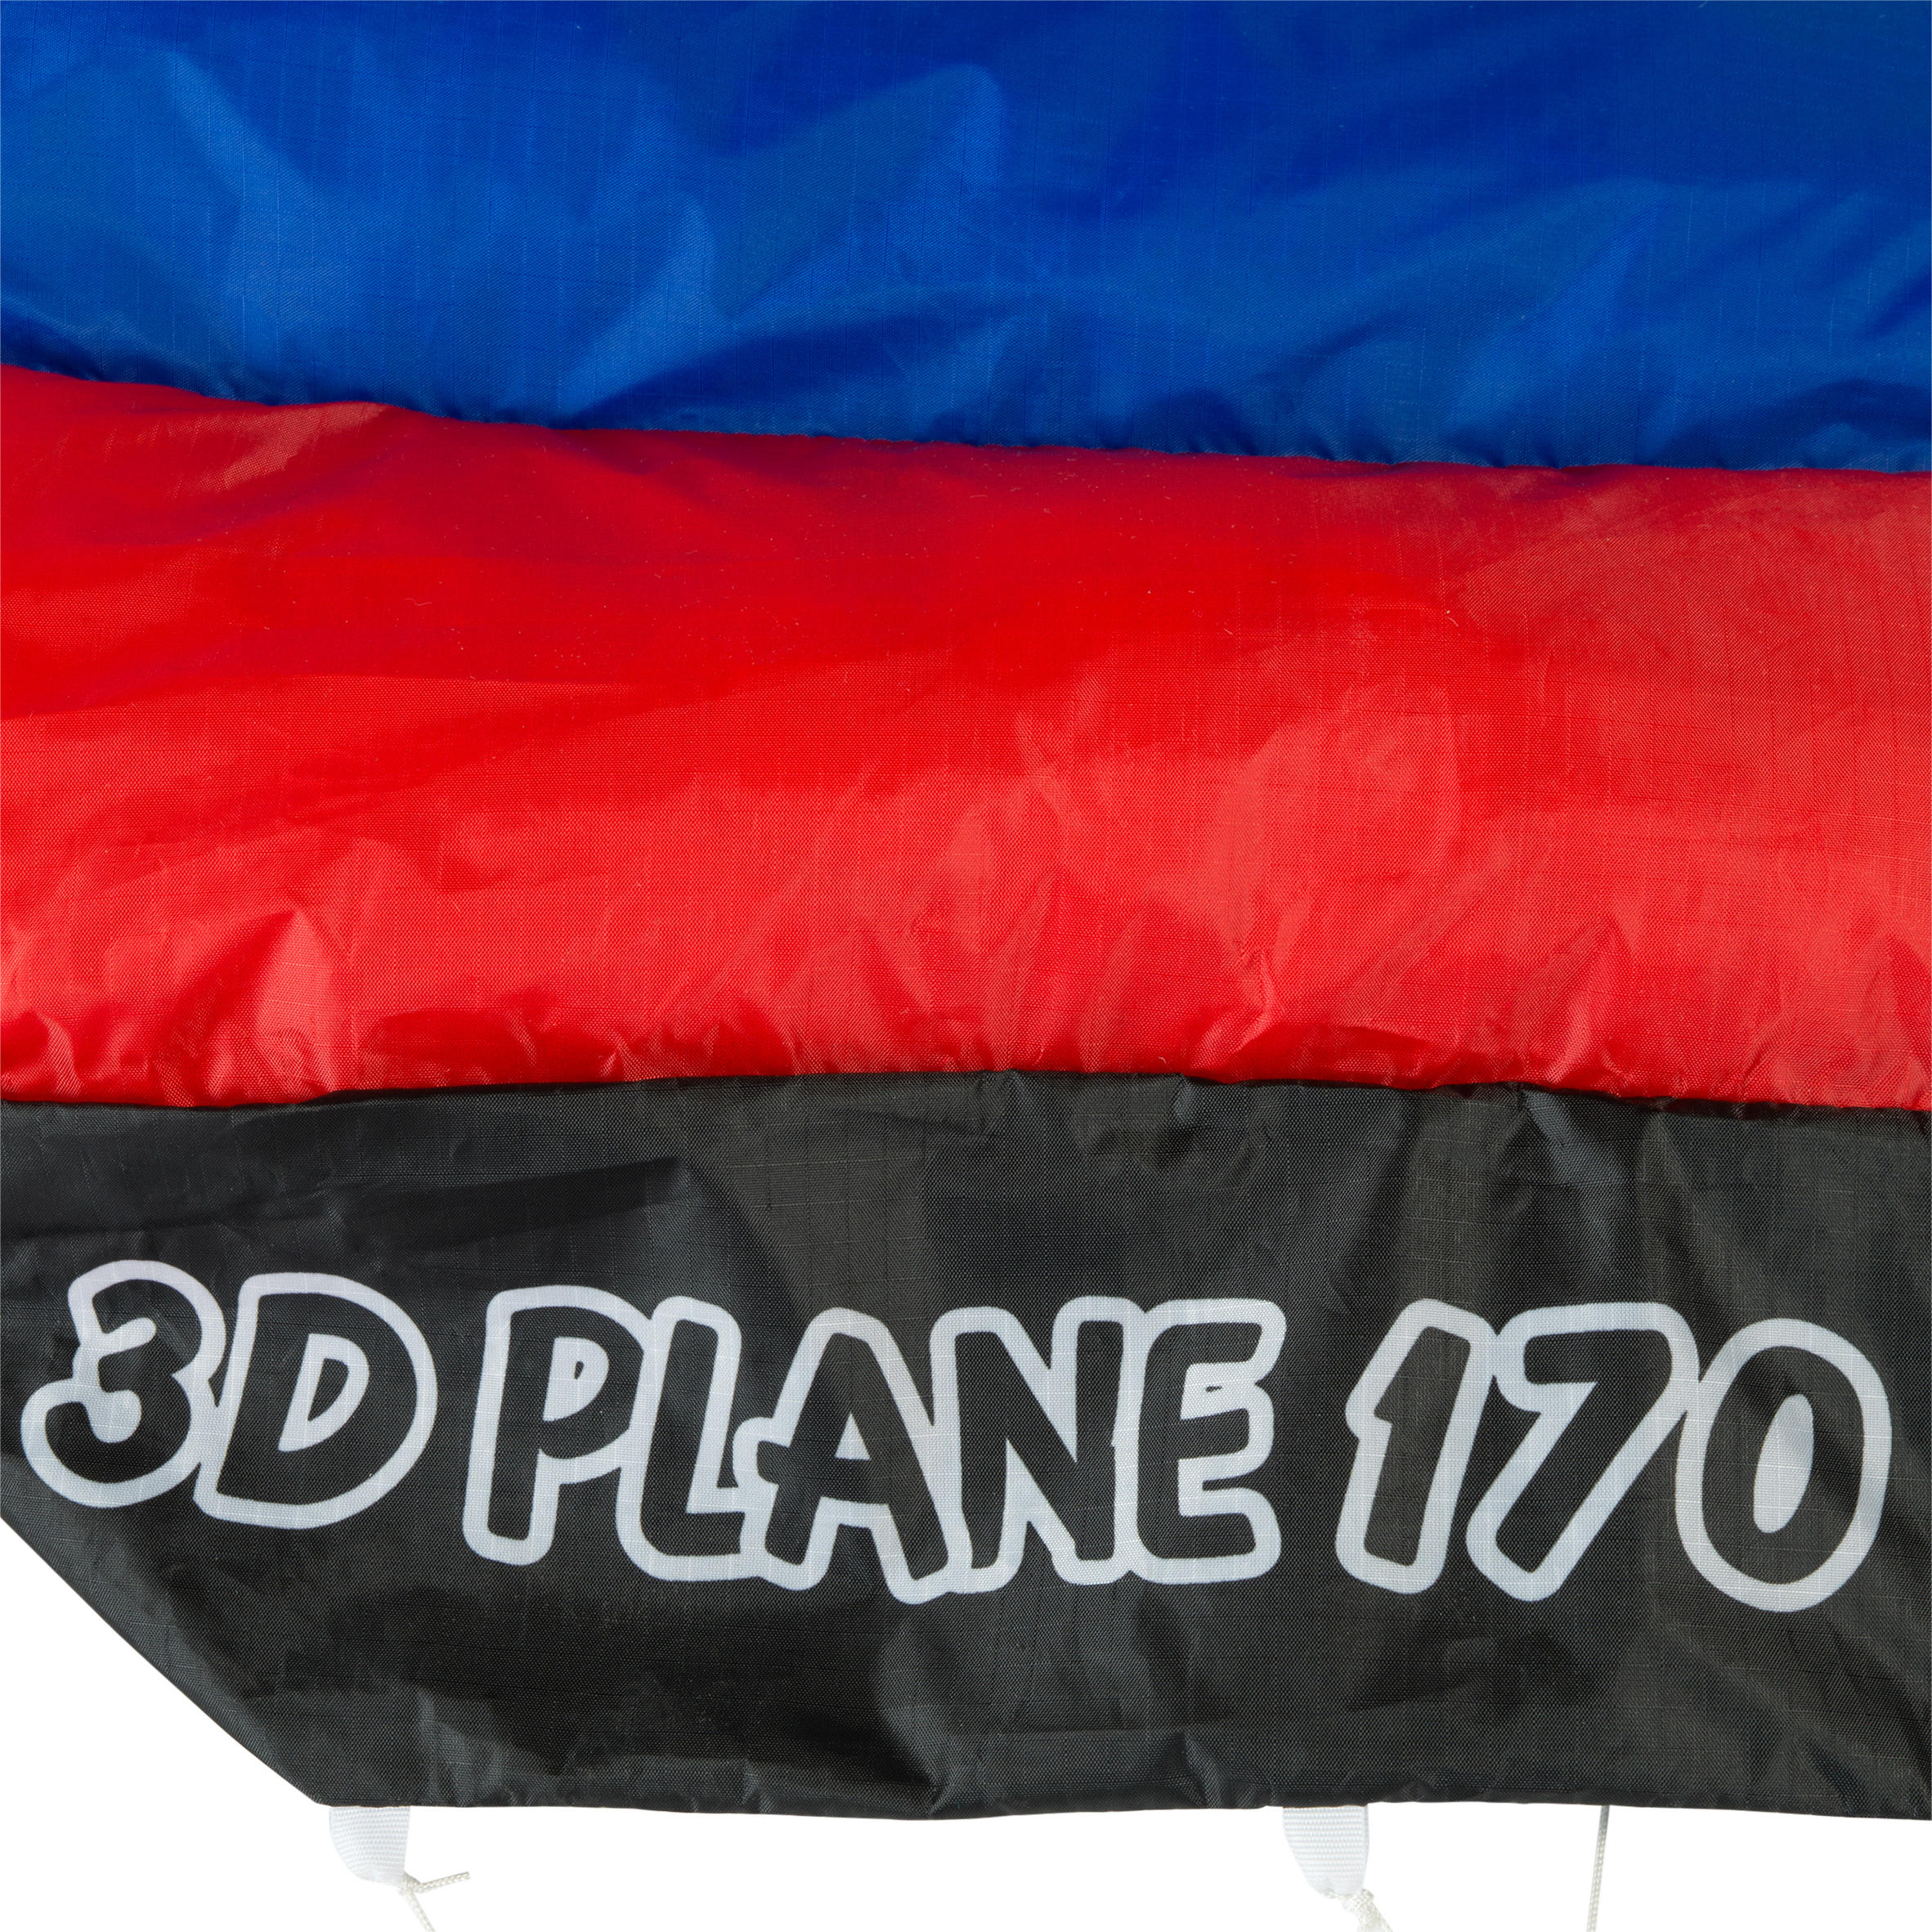 3D Plane 170 Children's Stunt Kite - Voltige Colours